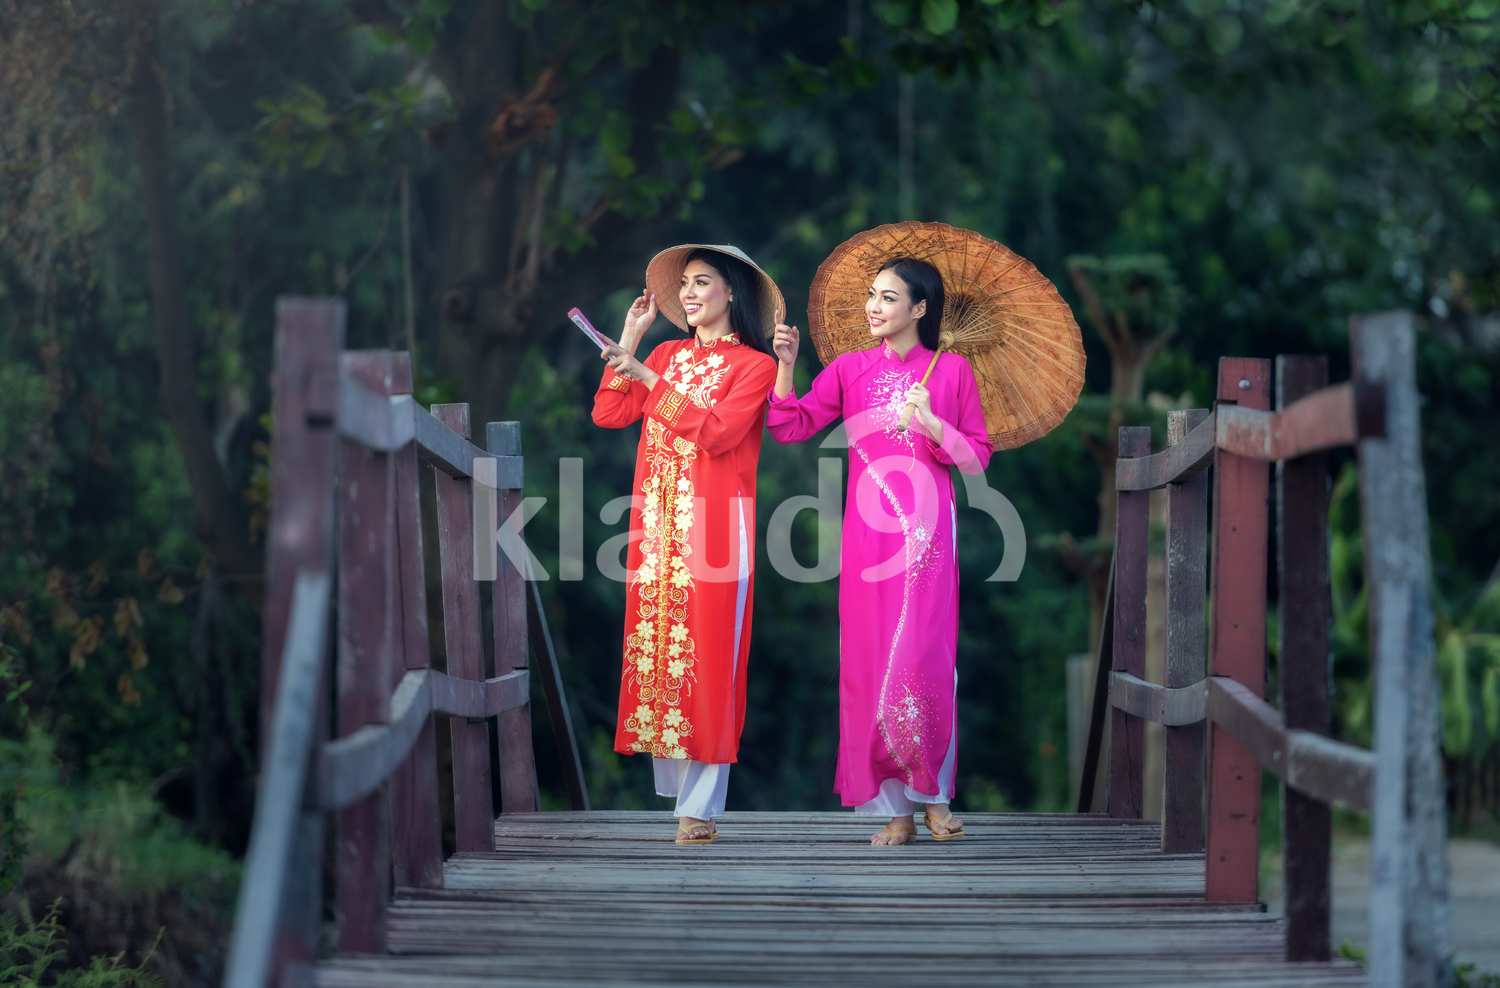 Portrait of Vietnamese girls in traditional dress